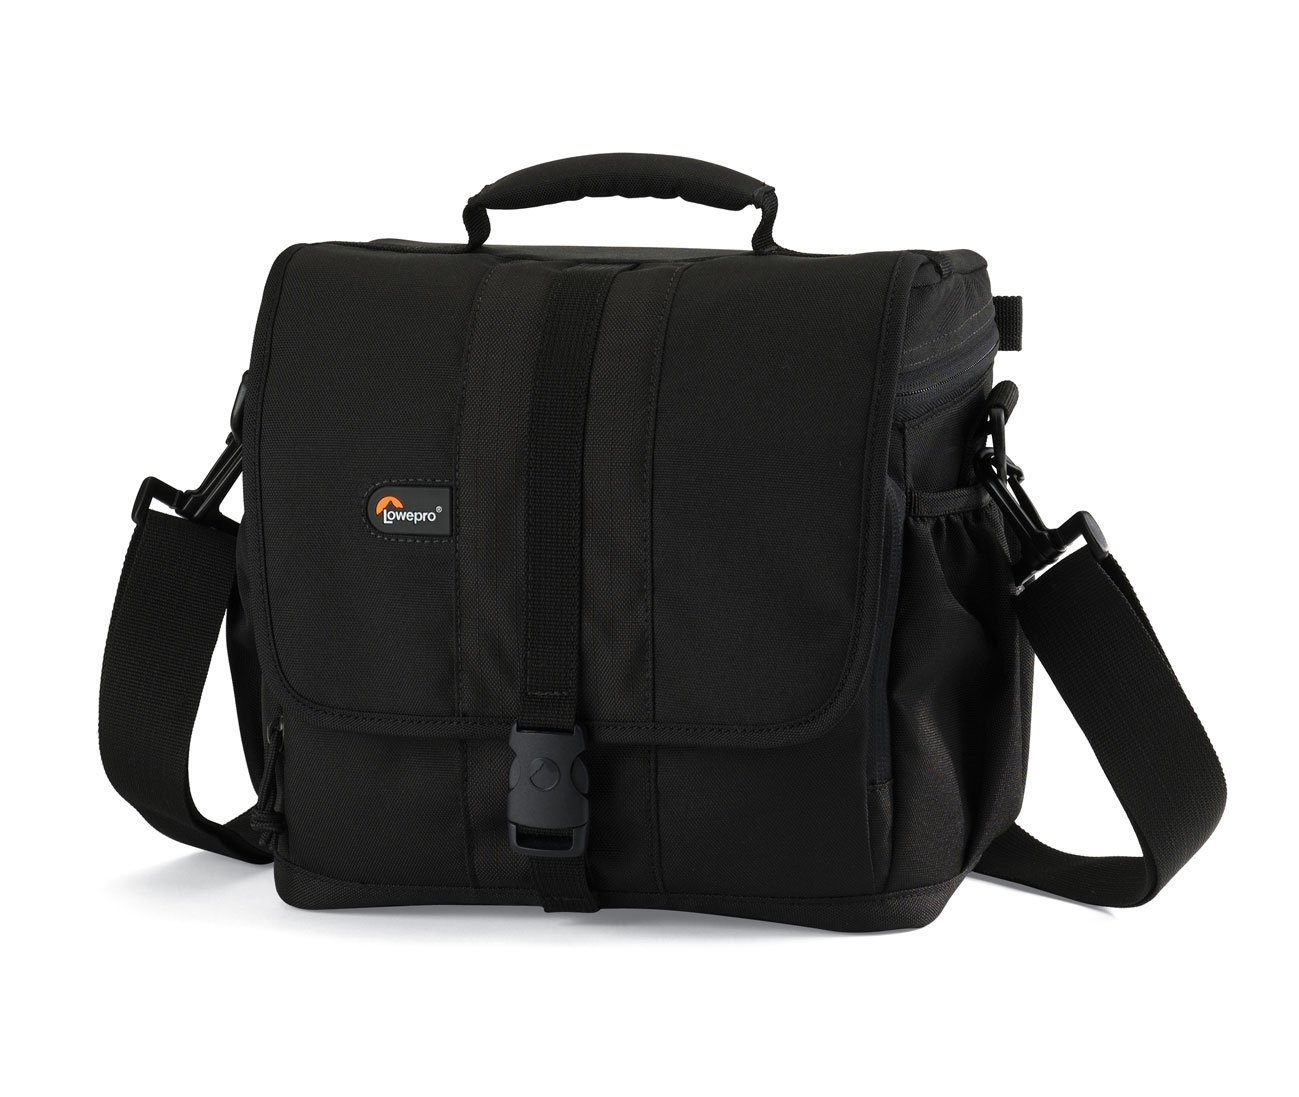 Lowepro Adventura 170 Camera Shoulder Bag for DSLR or Camcorder